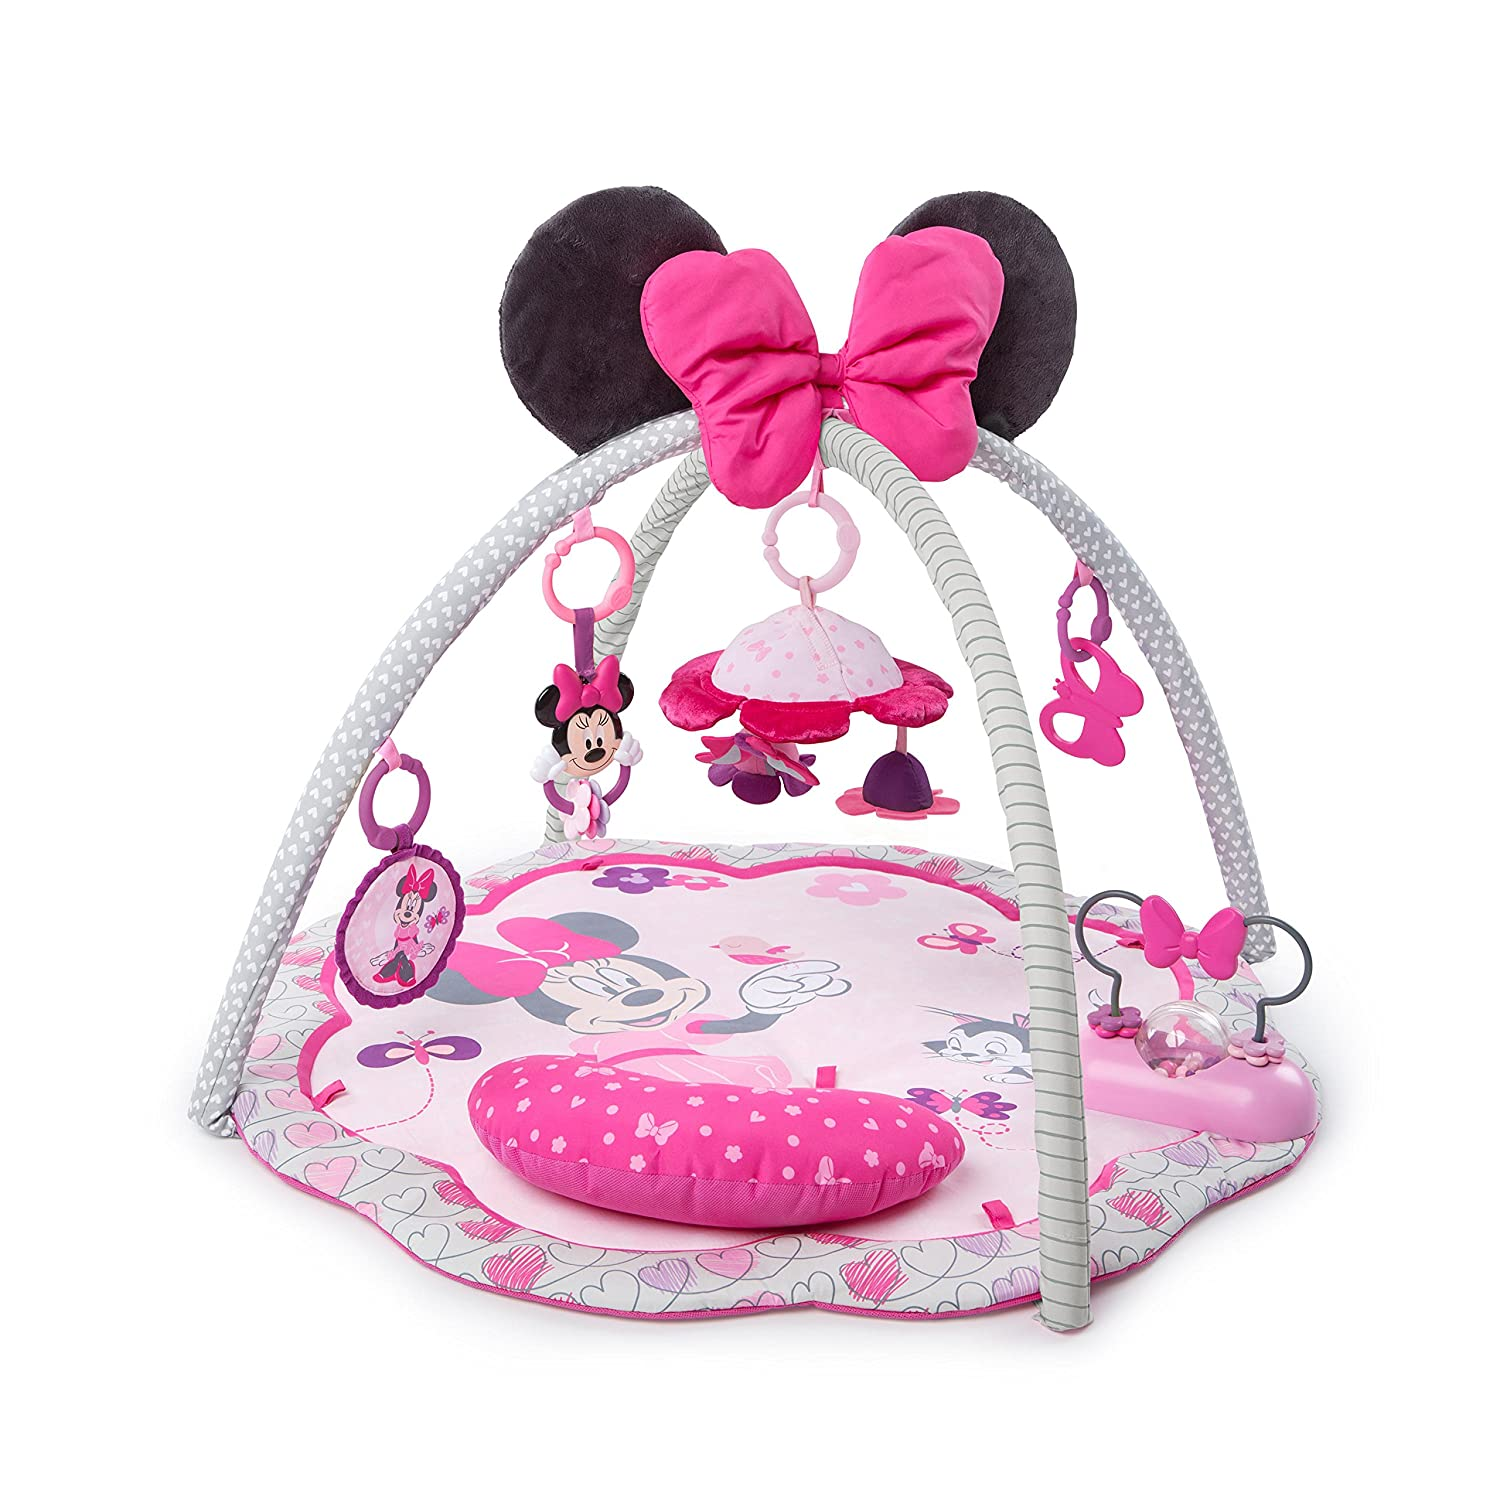 Tapis d'Eveil MINNIE, Garden Fun Tapis d' Eveil MINNIE Kids II UK Limited 11097-3